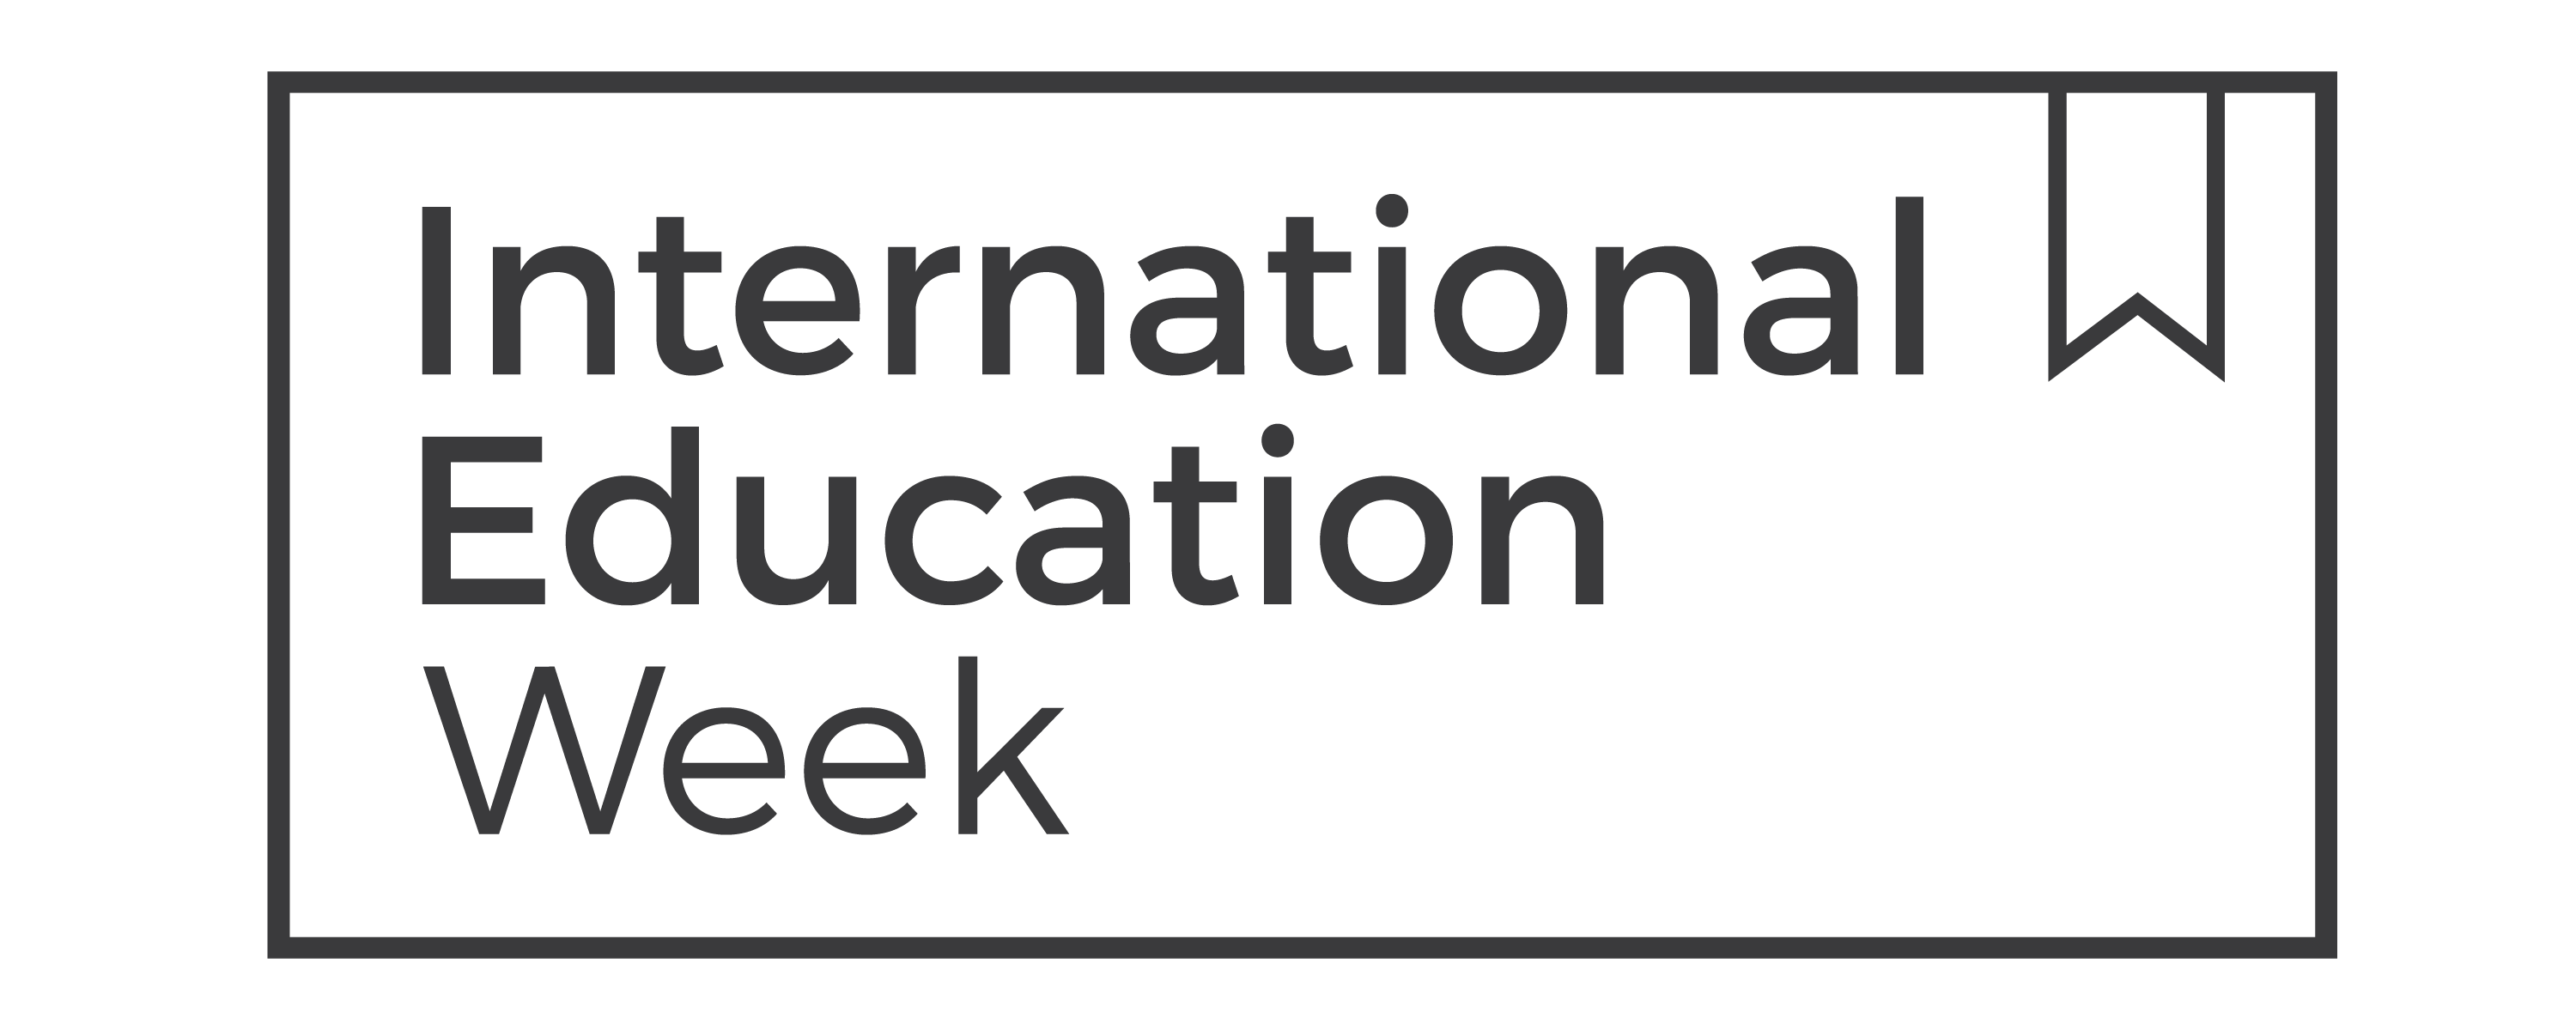 International Ed Week Logo